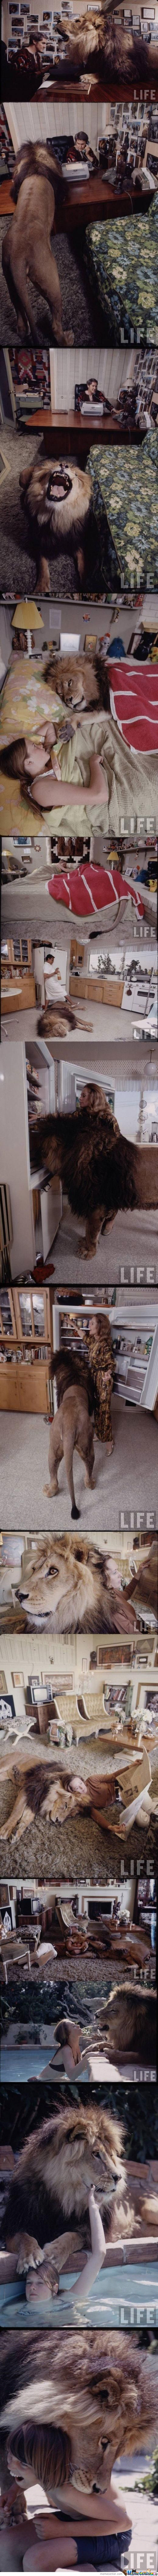 Family Living With Lion